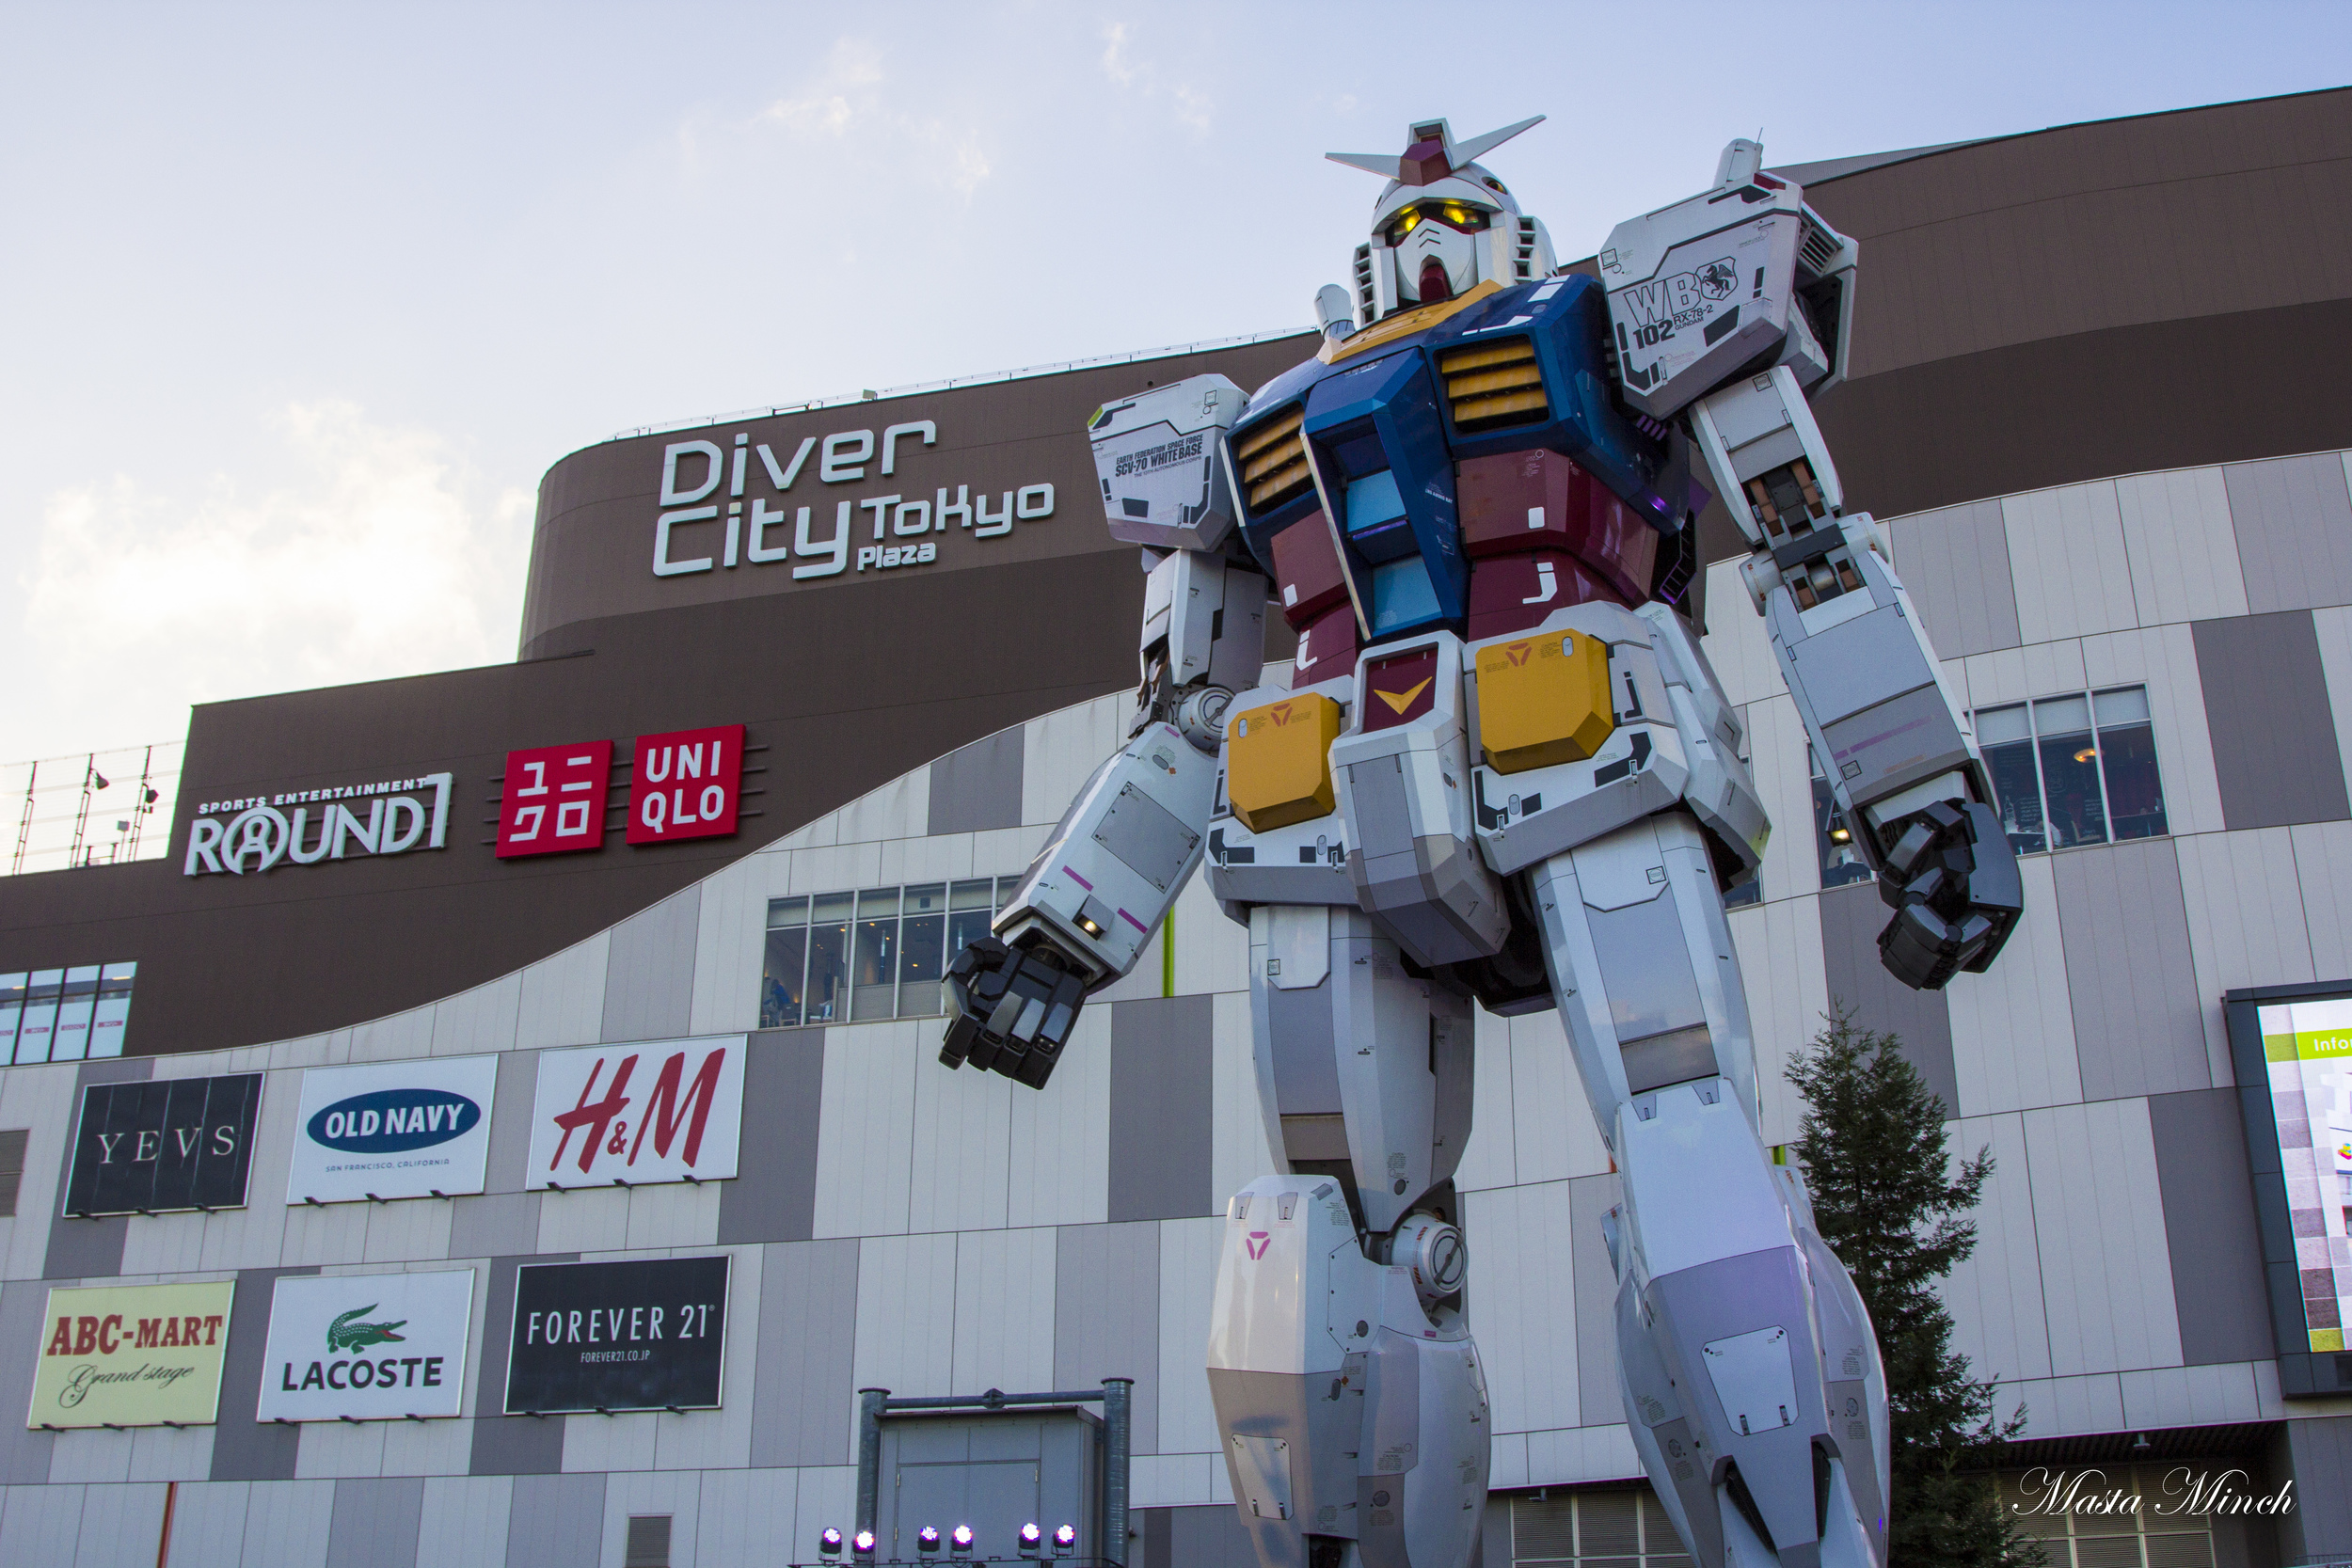 The full size Gundam in Diver City is AMAZING!